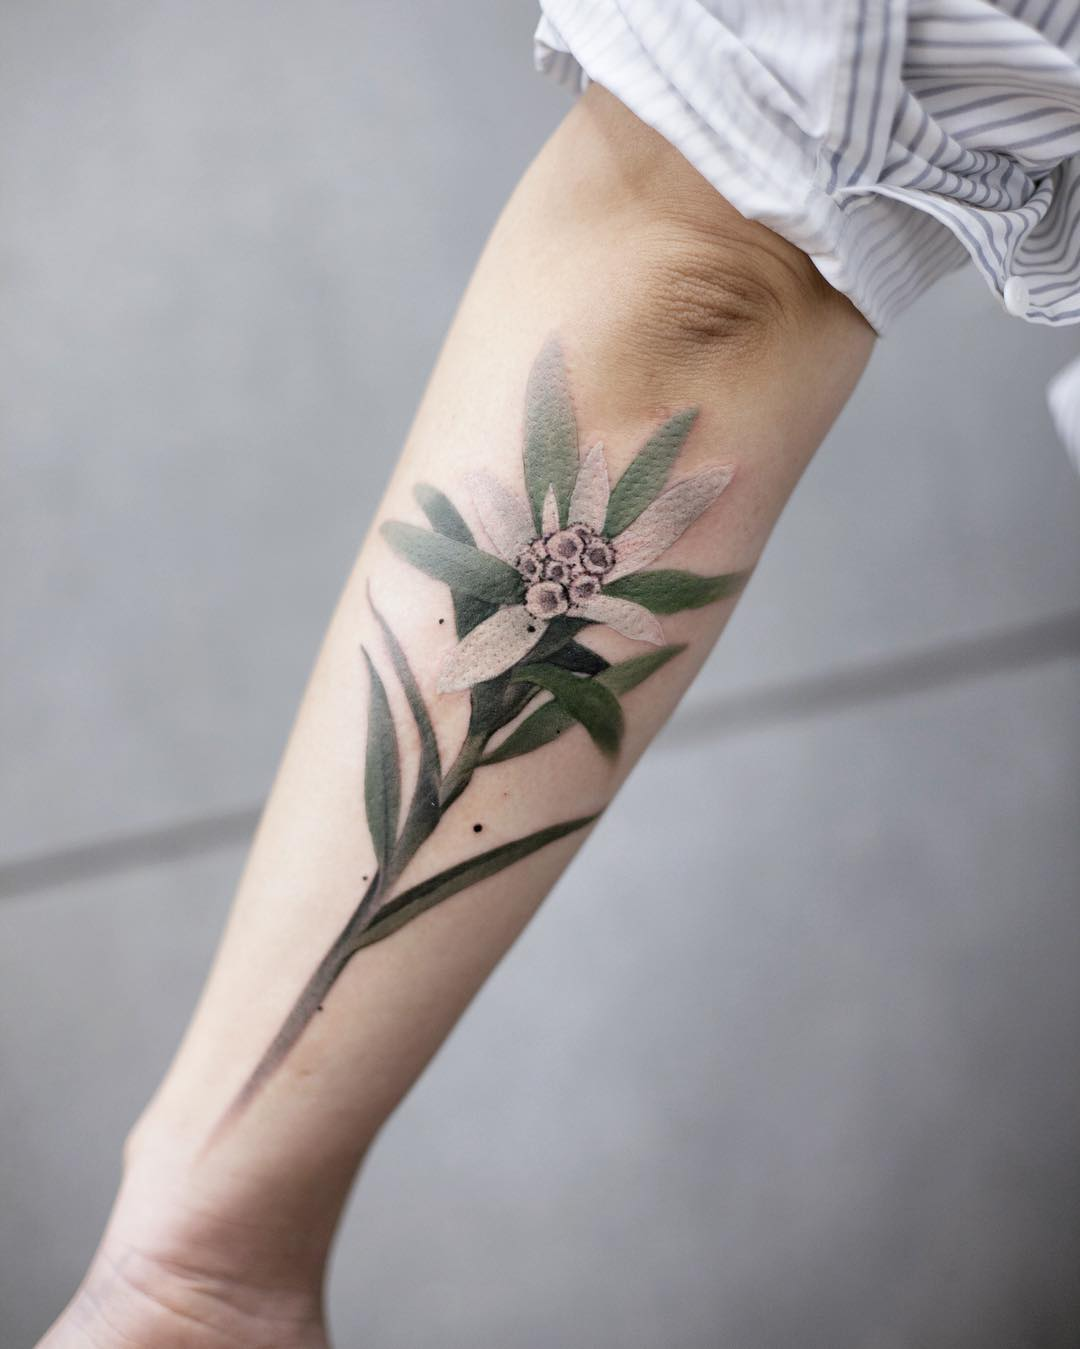 Edelweiss tattoo by tattooist Chenjie